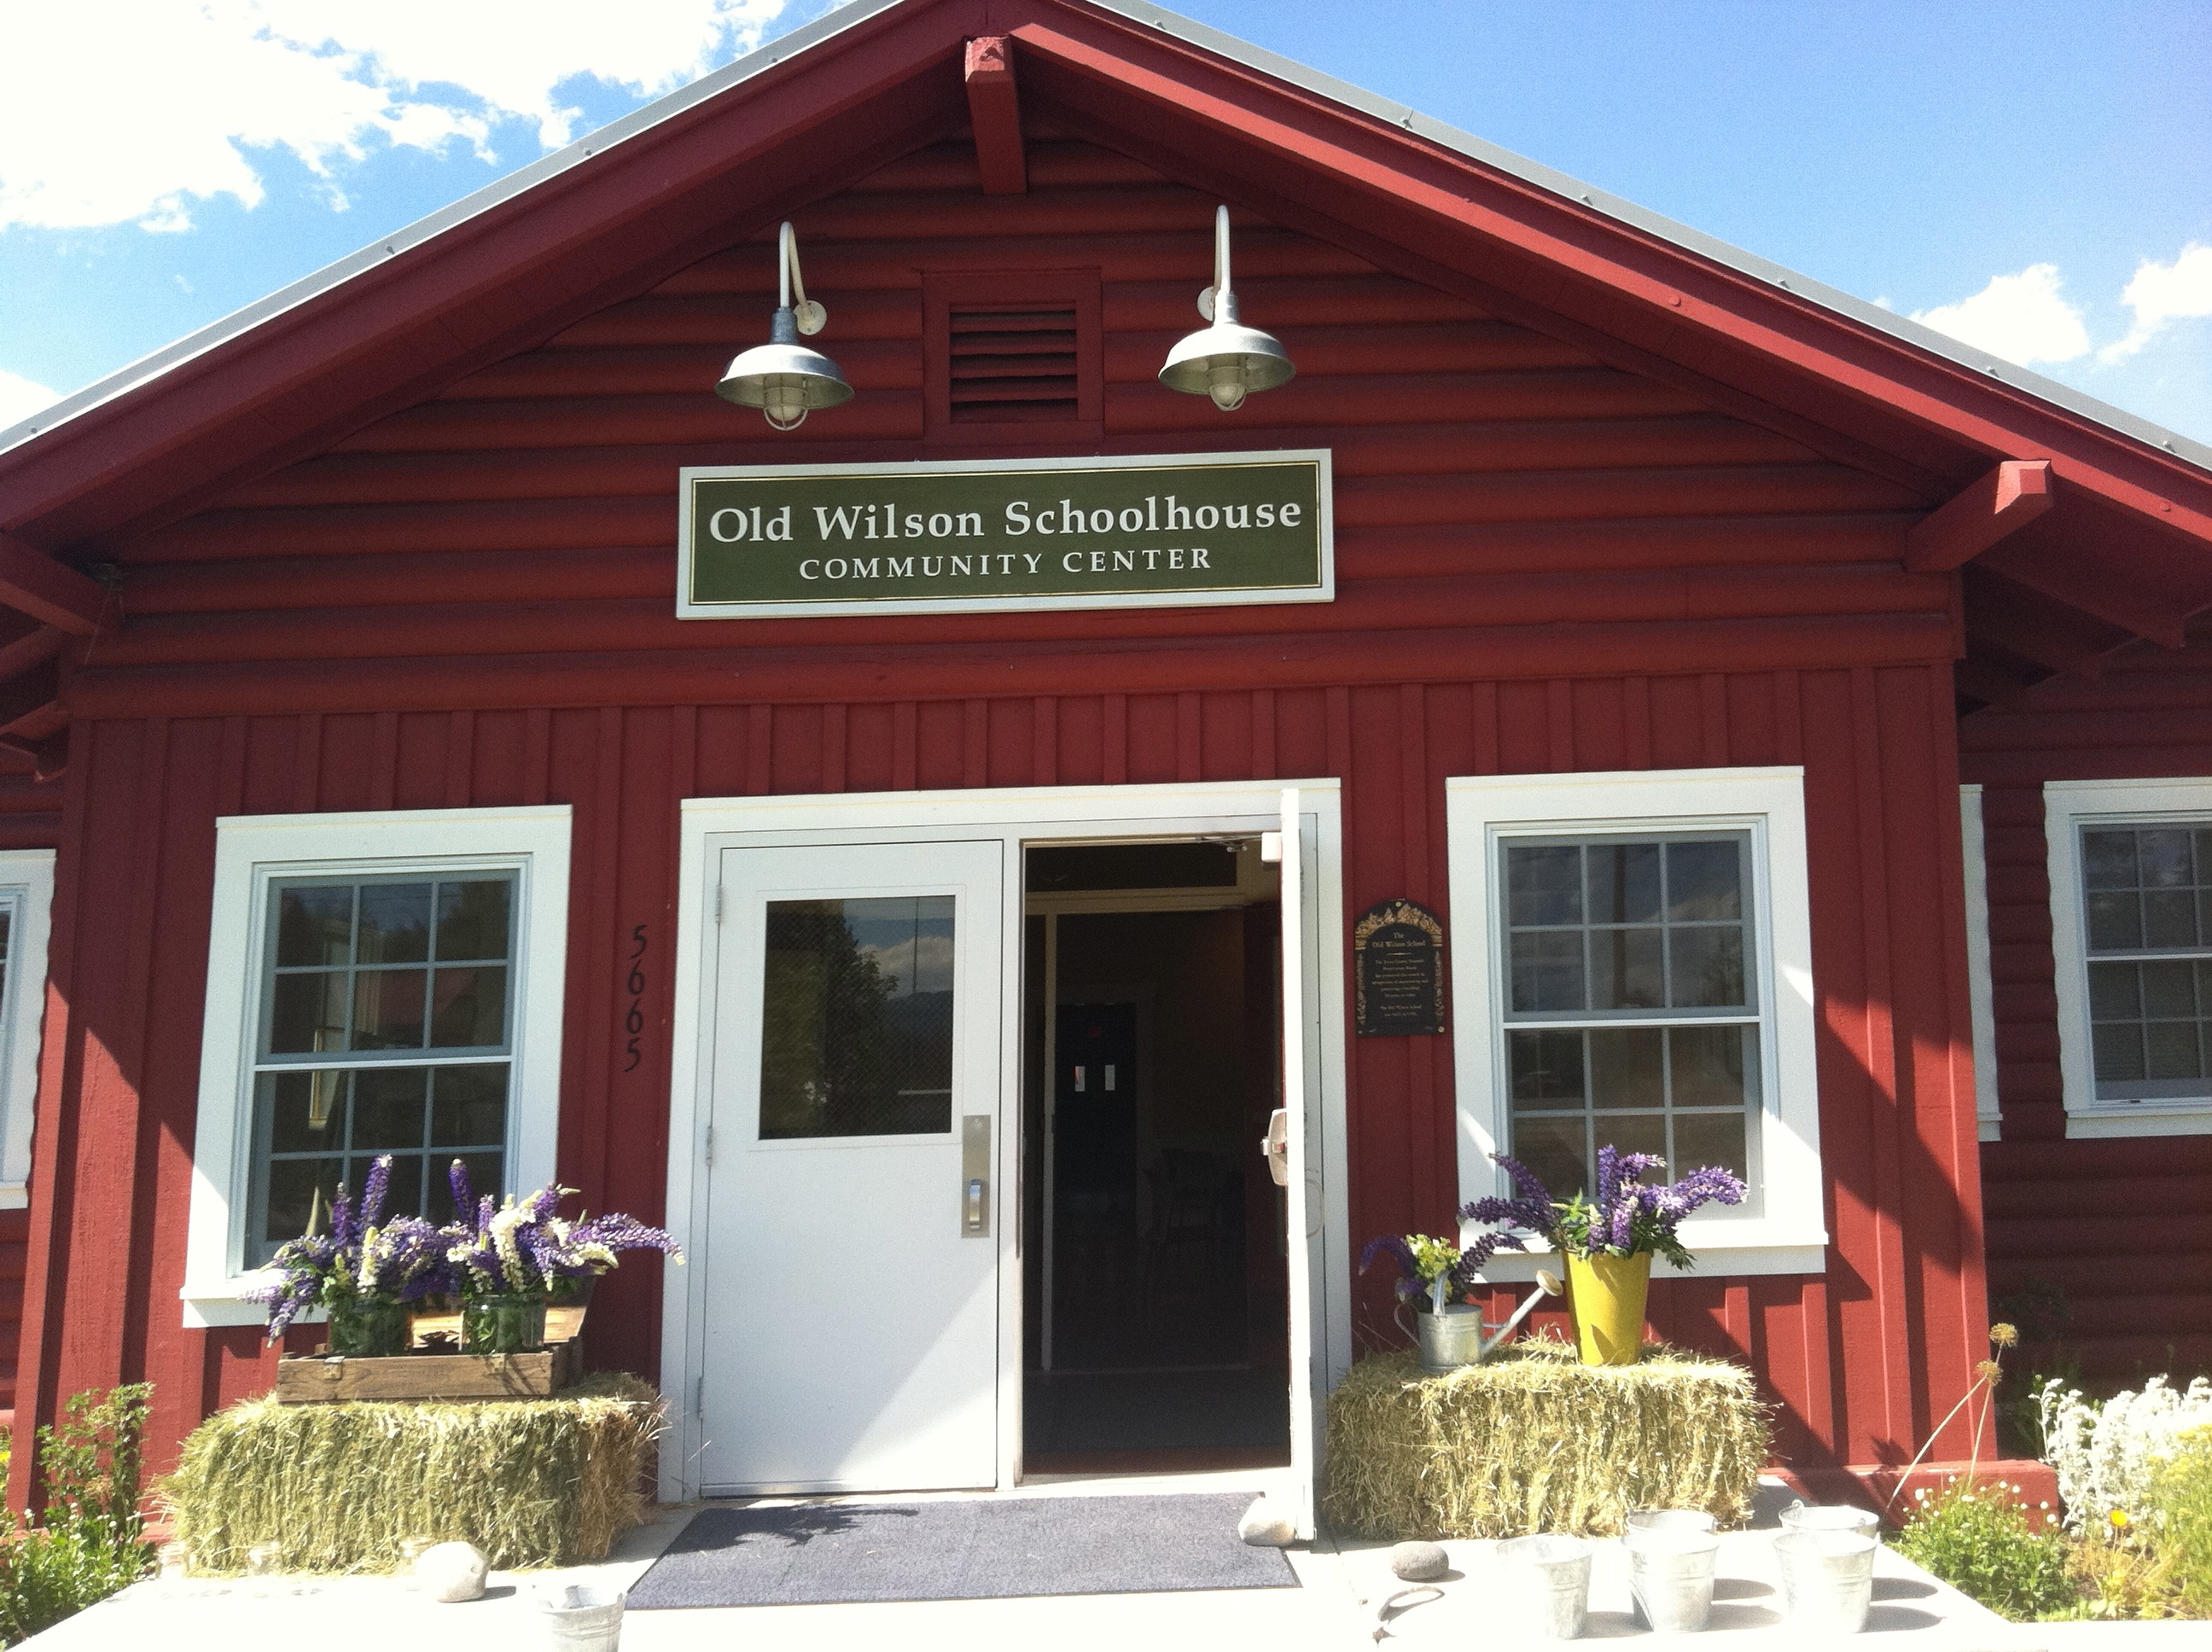 Welcome to Old Wilson Schoolhouse